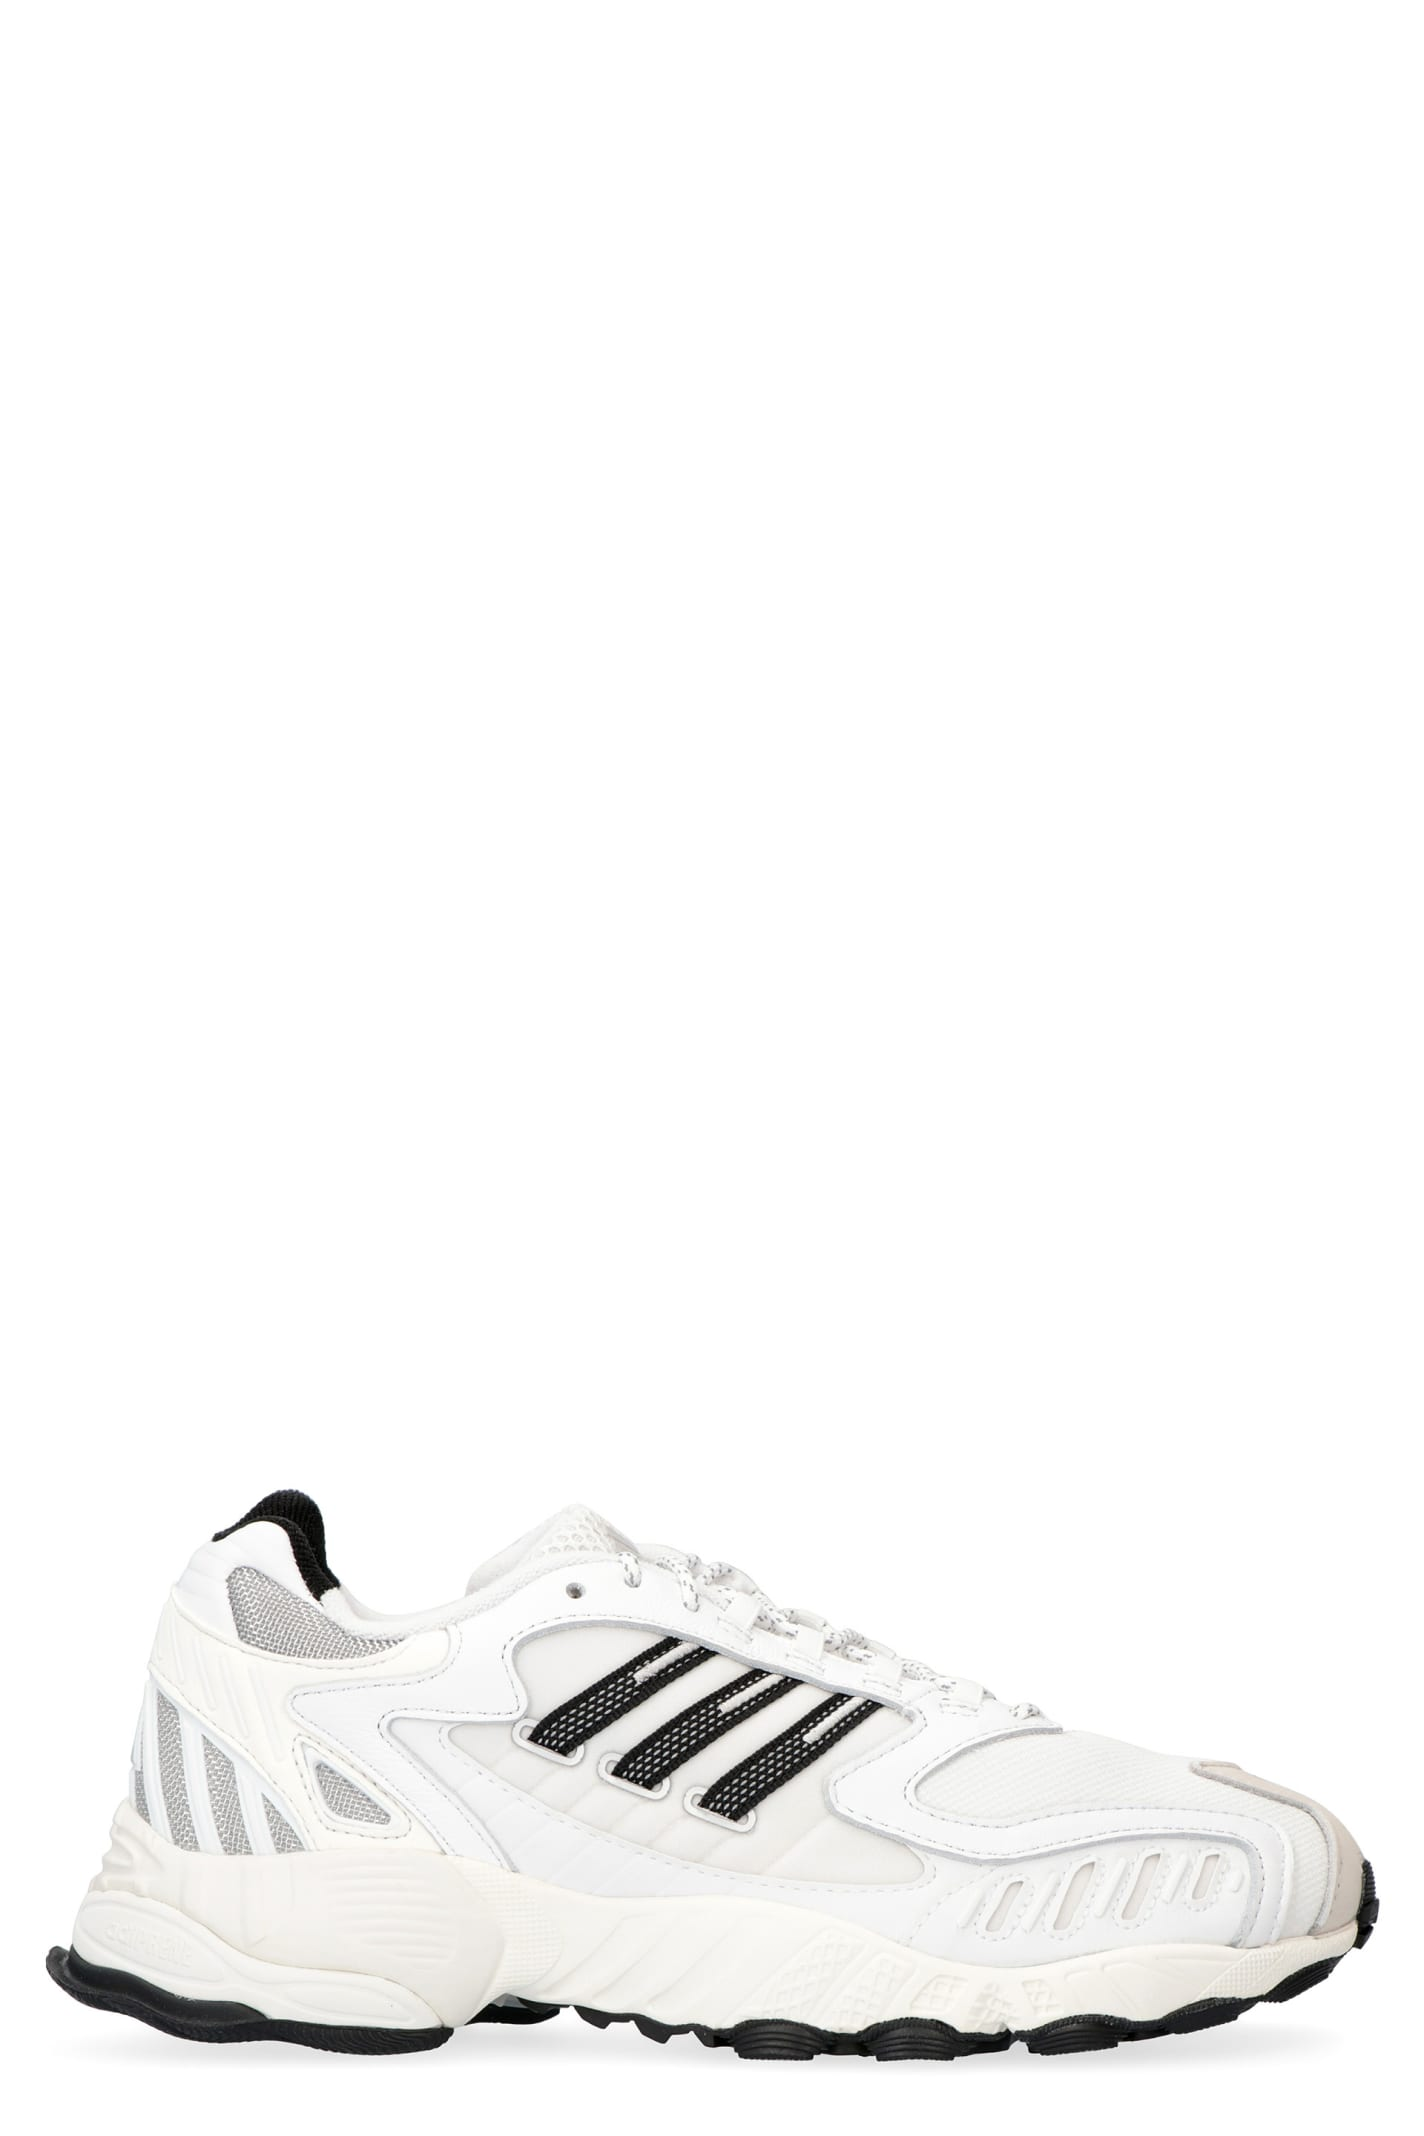 Adidas Torsion Trdc Low-top Sneakers